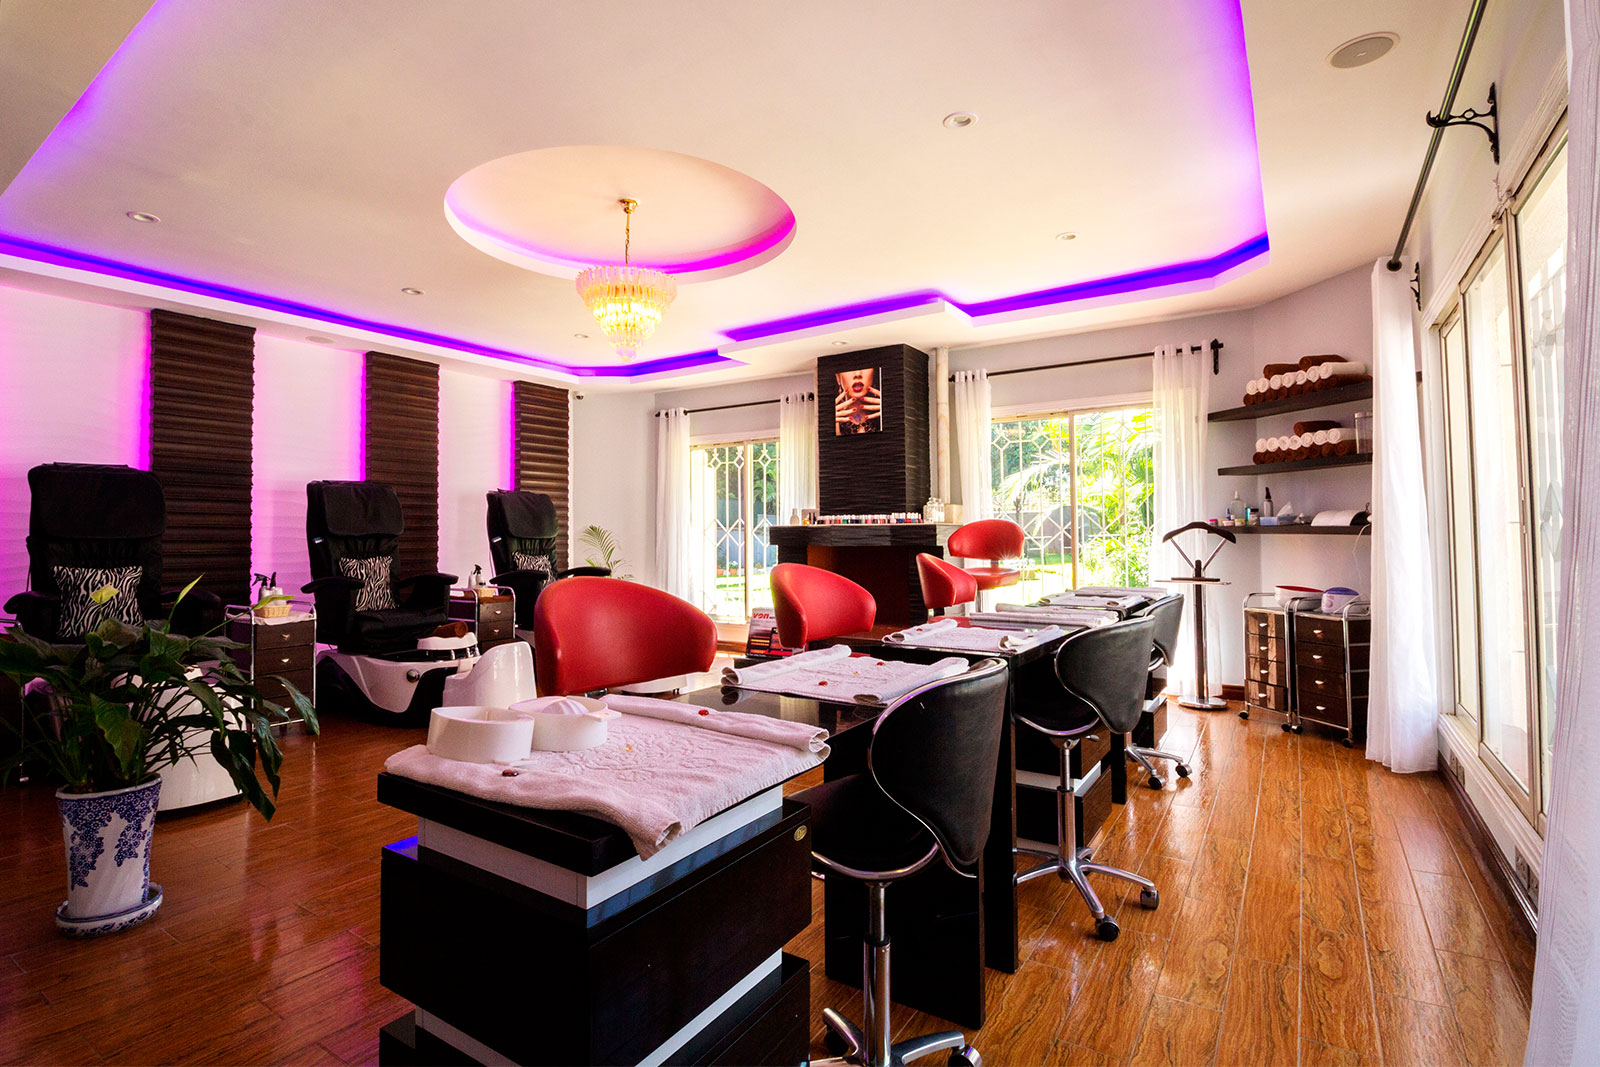 manicure, pedicure, revitalize, wellness, spa